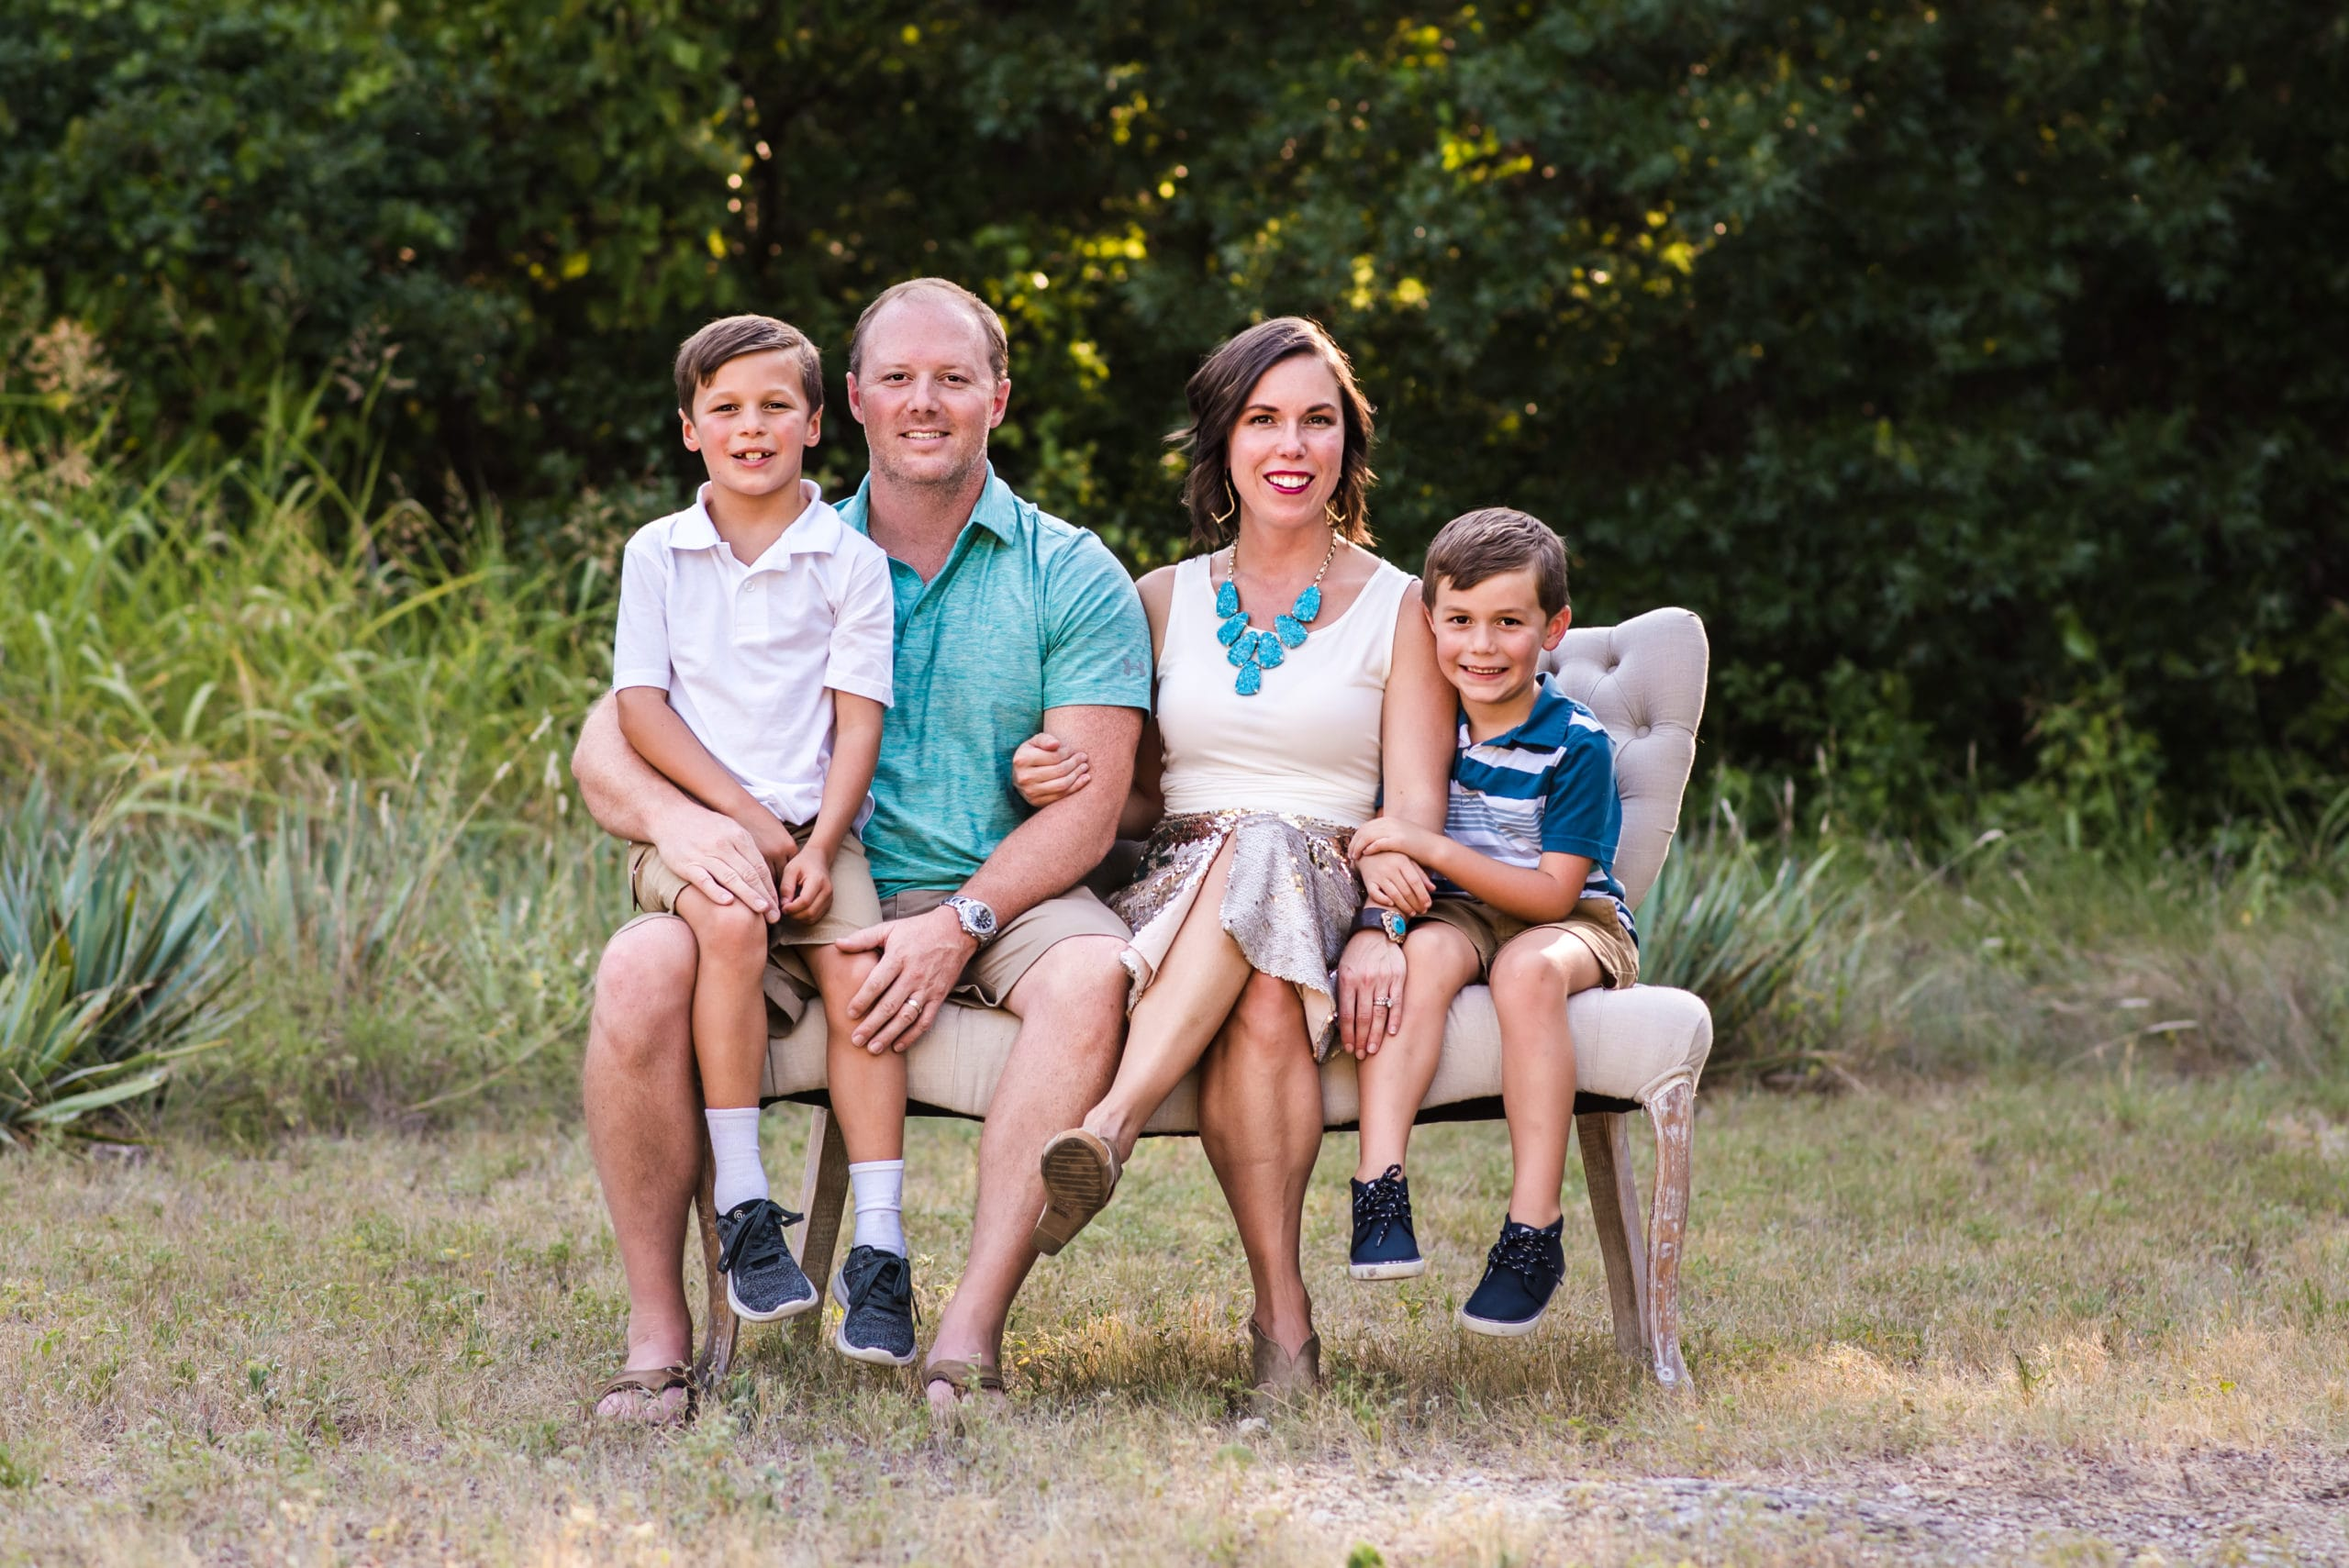 michelle parker and her family